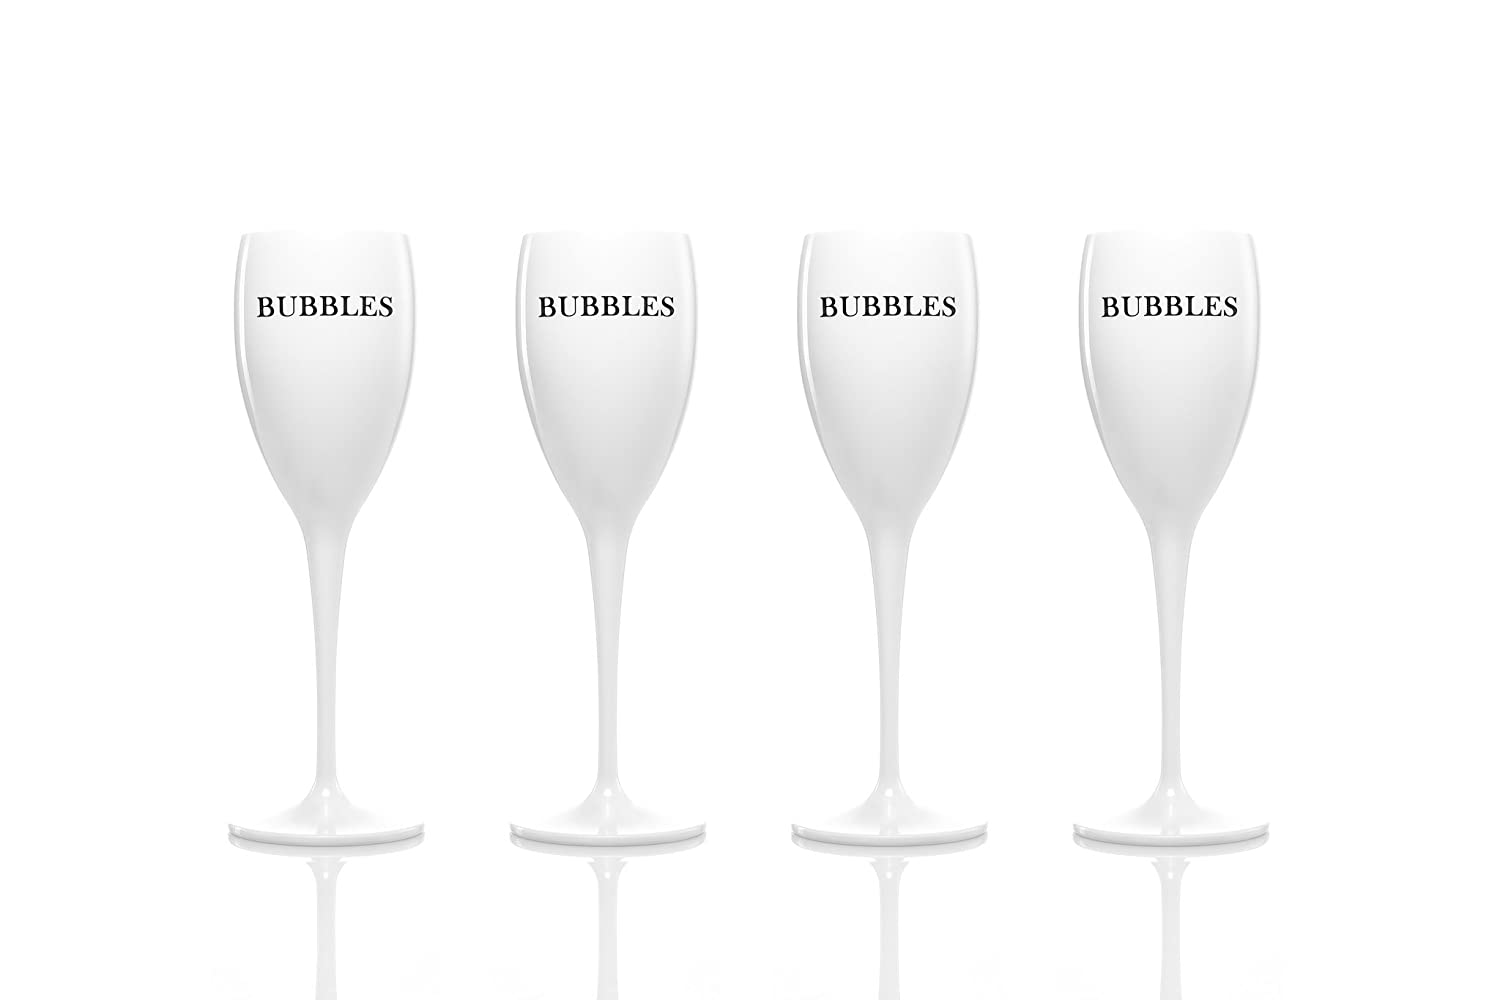 96bacda3c1a1 Set of 4 - Unbreakable acrylic champagne flutes glasses by dePrado´s. Best  for Moet Chandon summer parties! No glass